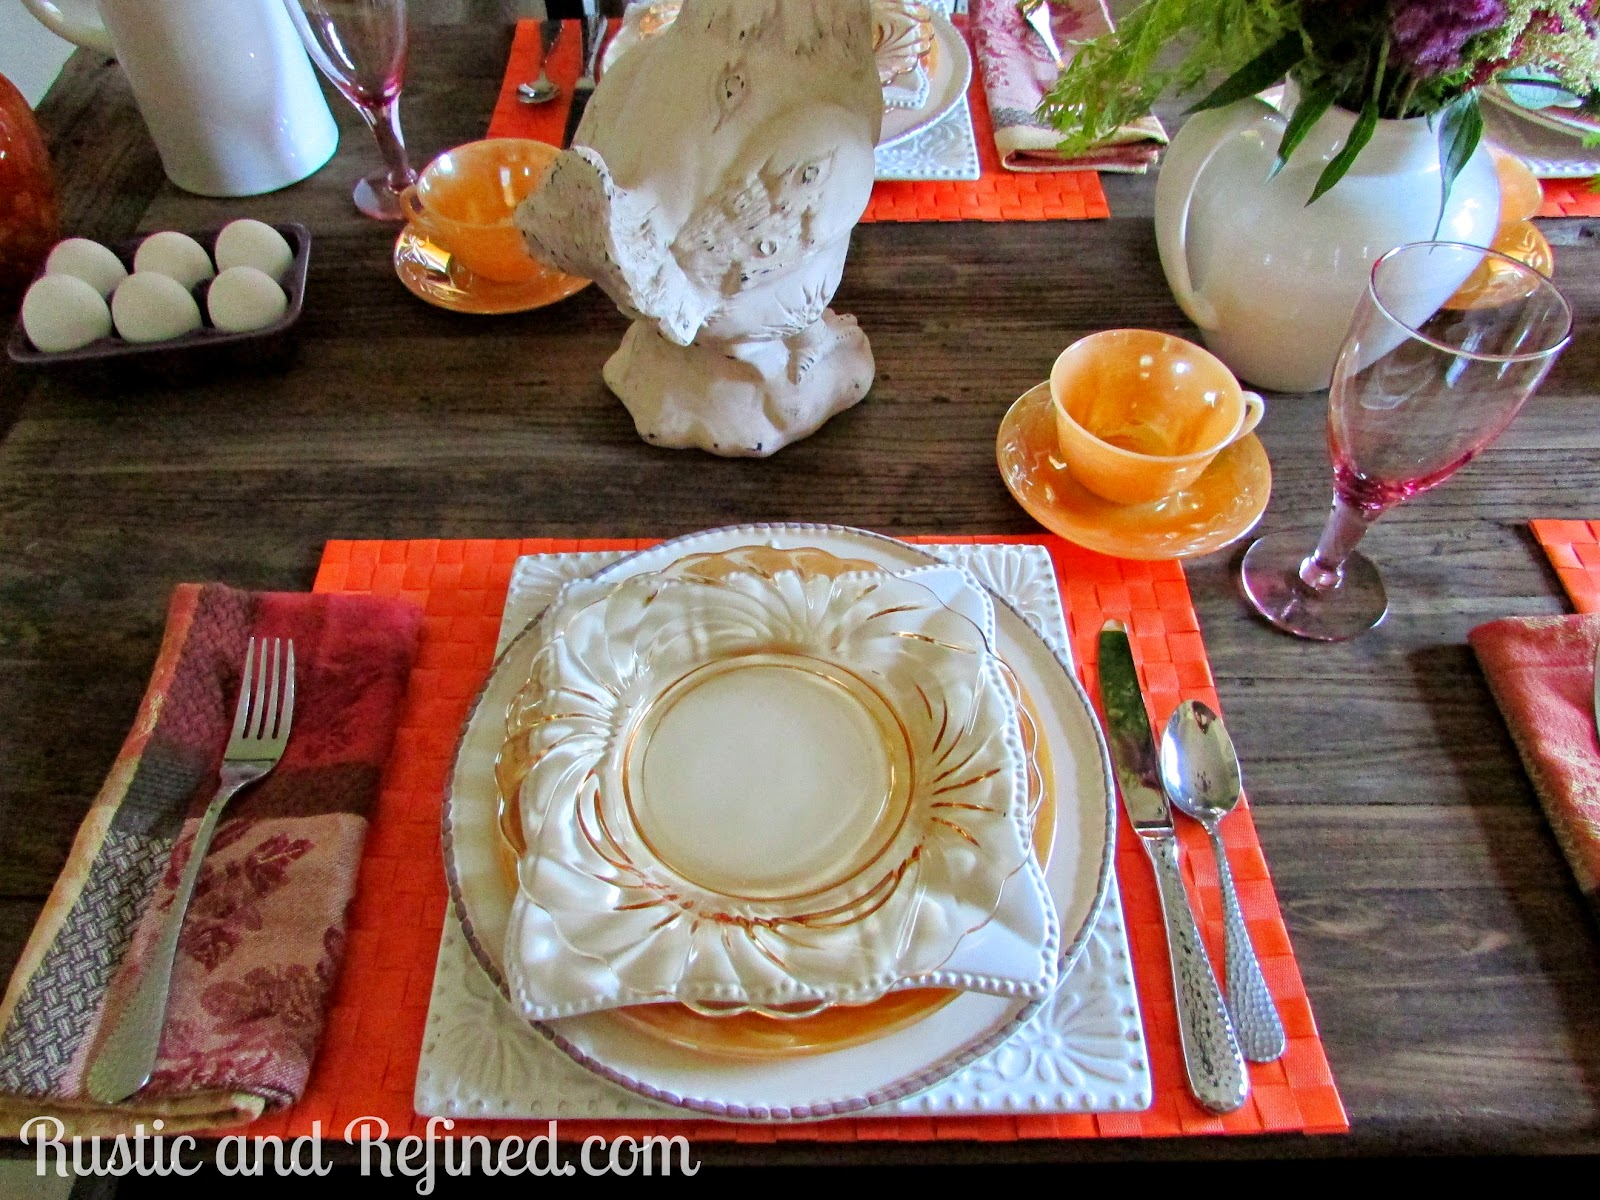 Summer Breakfast Tablescape @ Rustic-refined.com